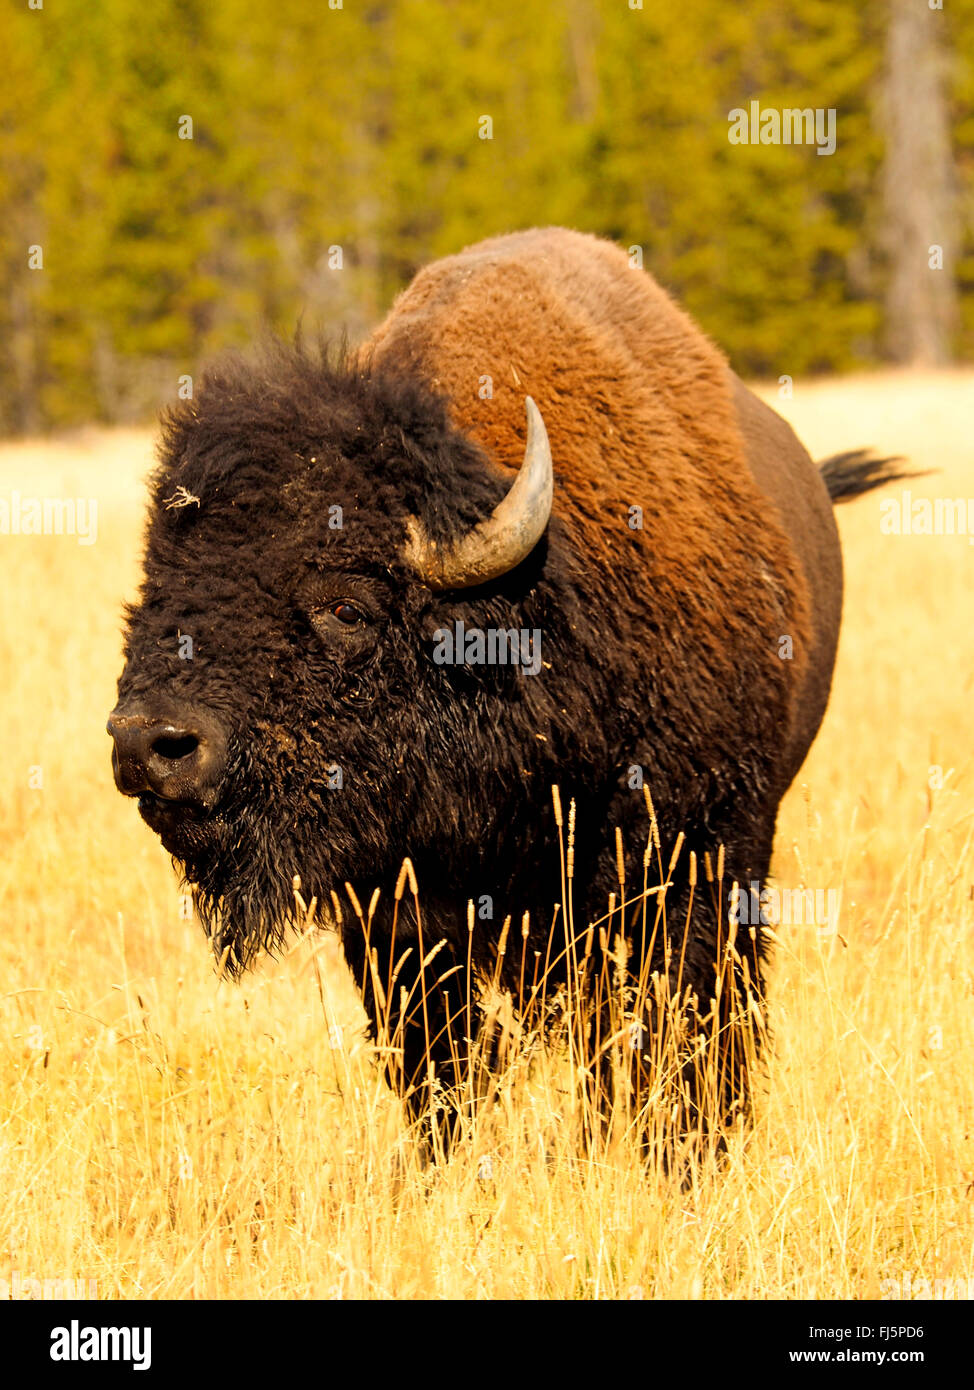 American bison, buffalo (Bison bison), bull, USA, Wyoming, Yellowstone National Park, Hayden Valley - Stock Image